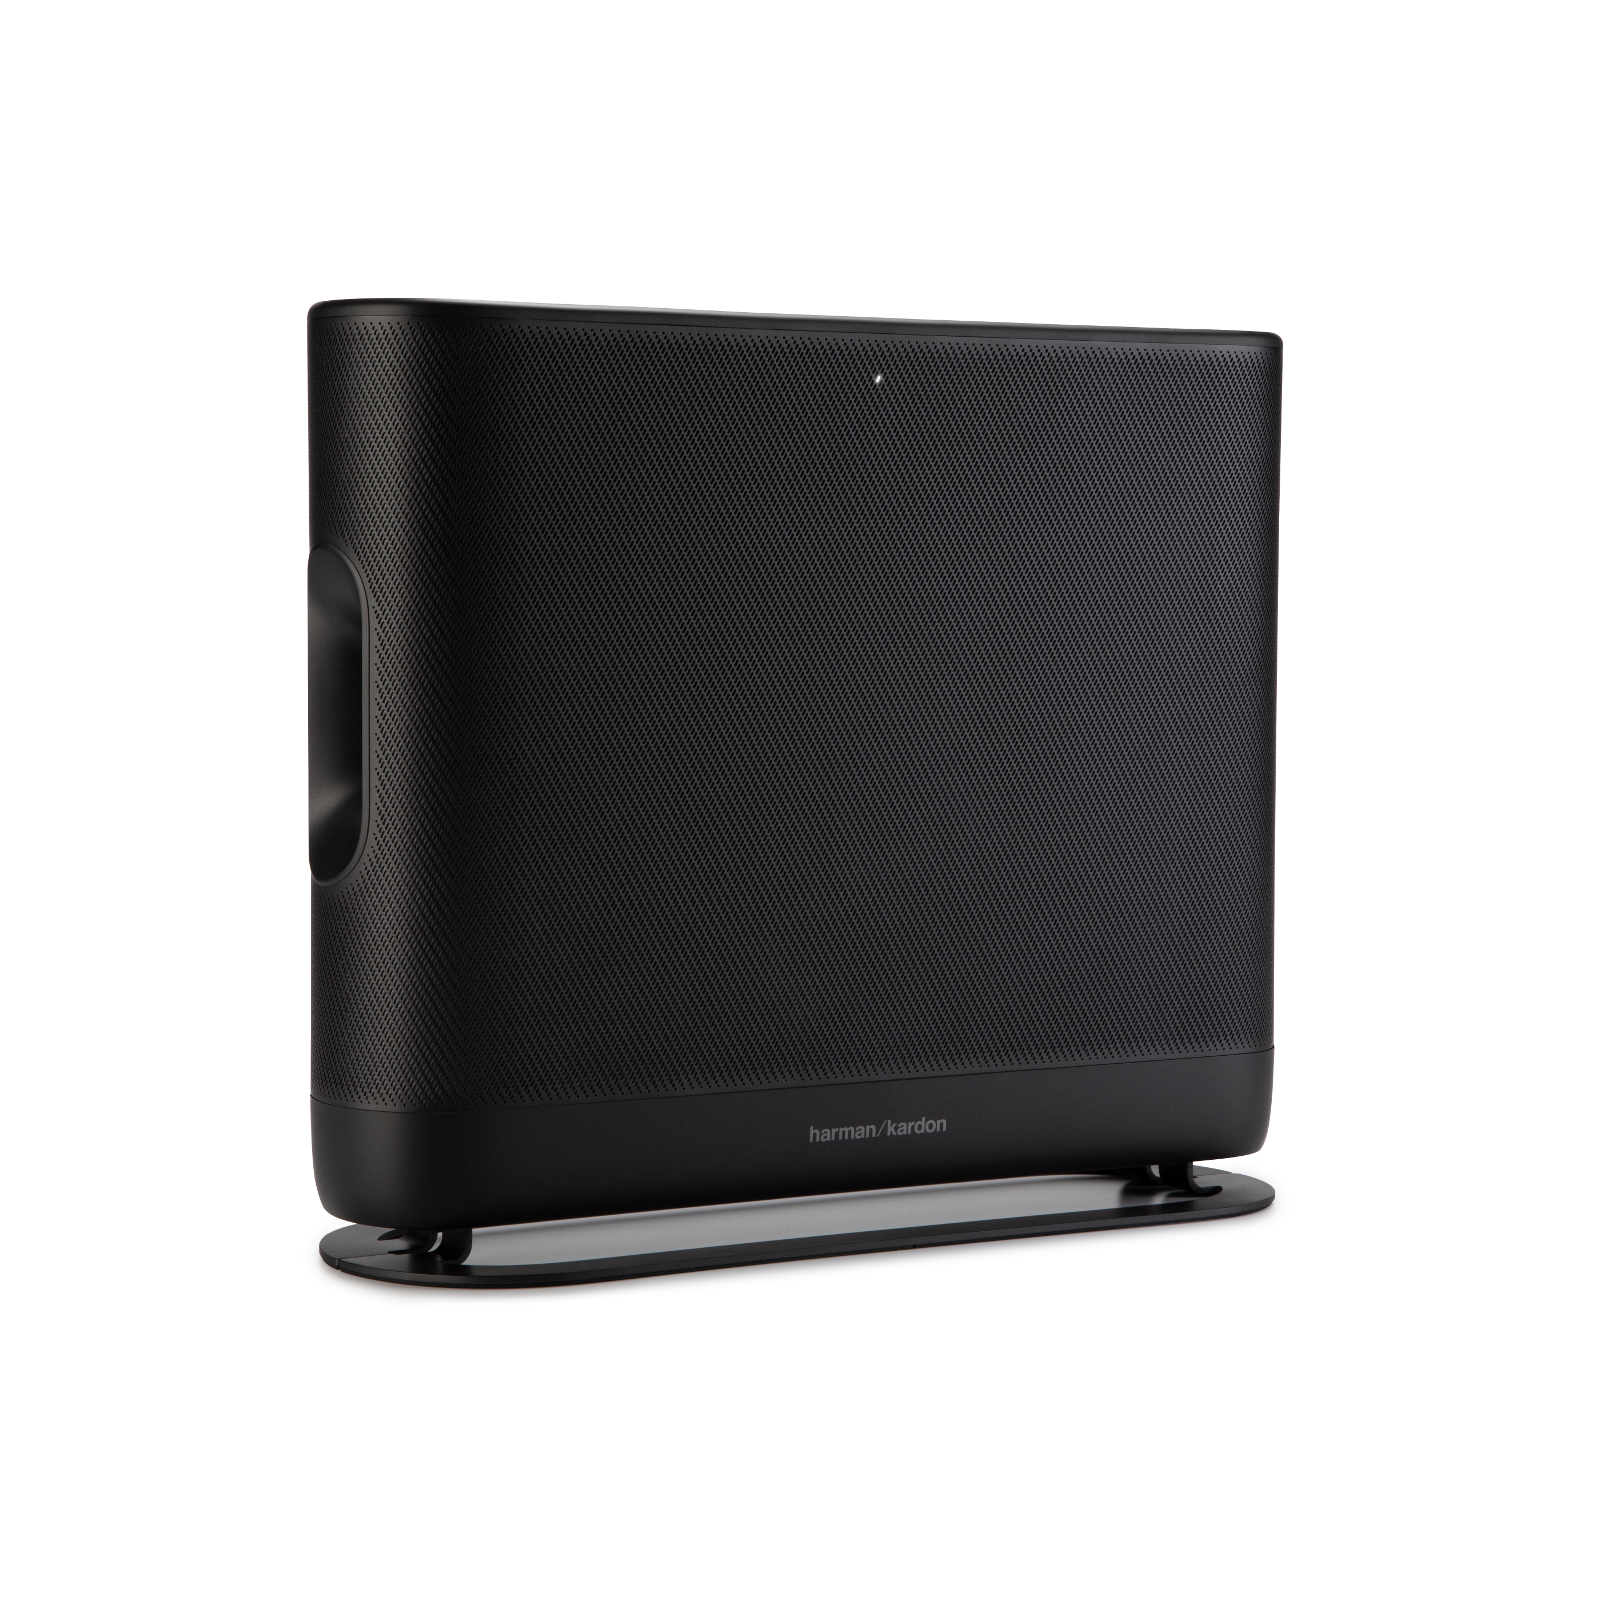 Harman Kardon Surround - Black - Wireless Home Theater System - Detailshot 5